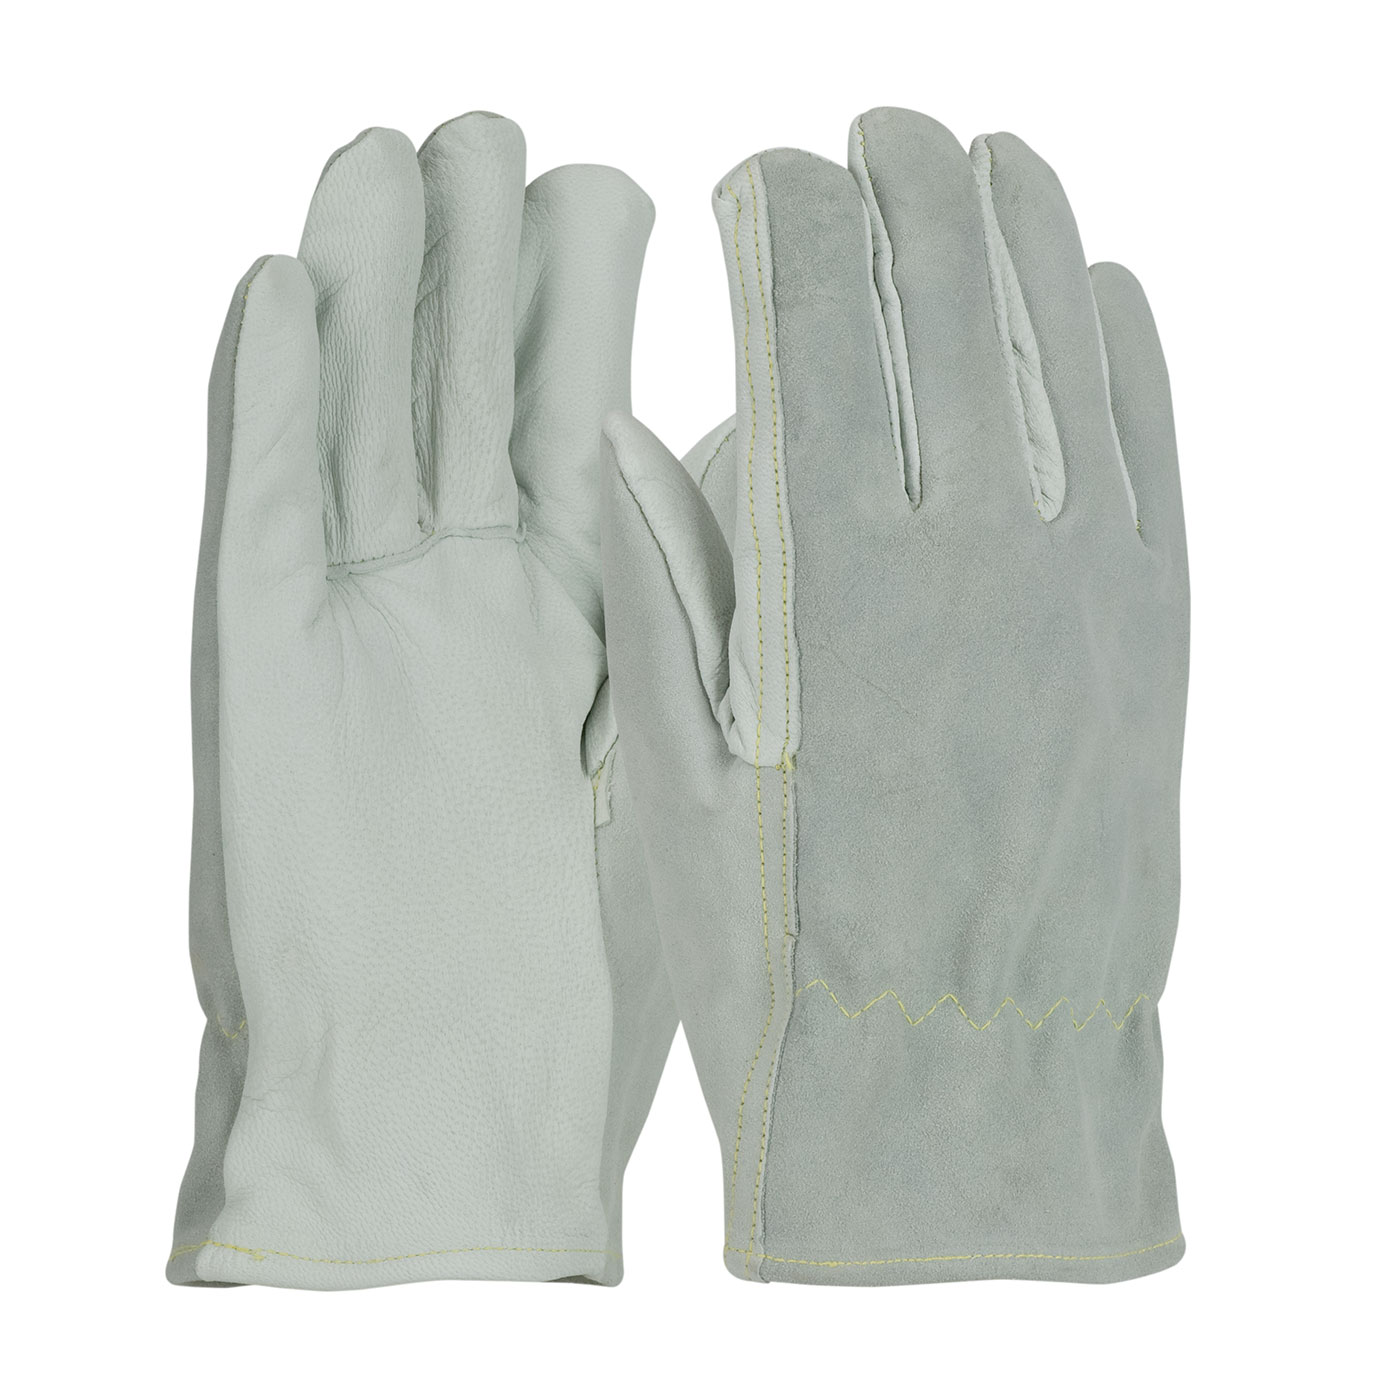 Top Grain Goatskin / Split Cowhide Leather Drivers Glove with Kevlar® Liner - Straight Thumb, Natural, M